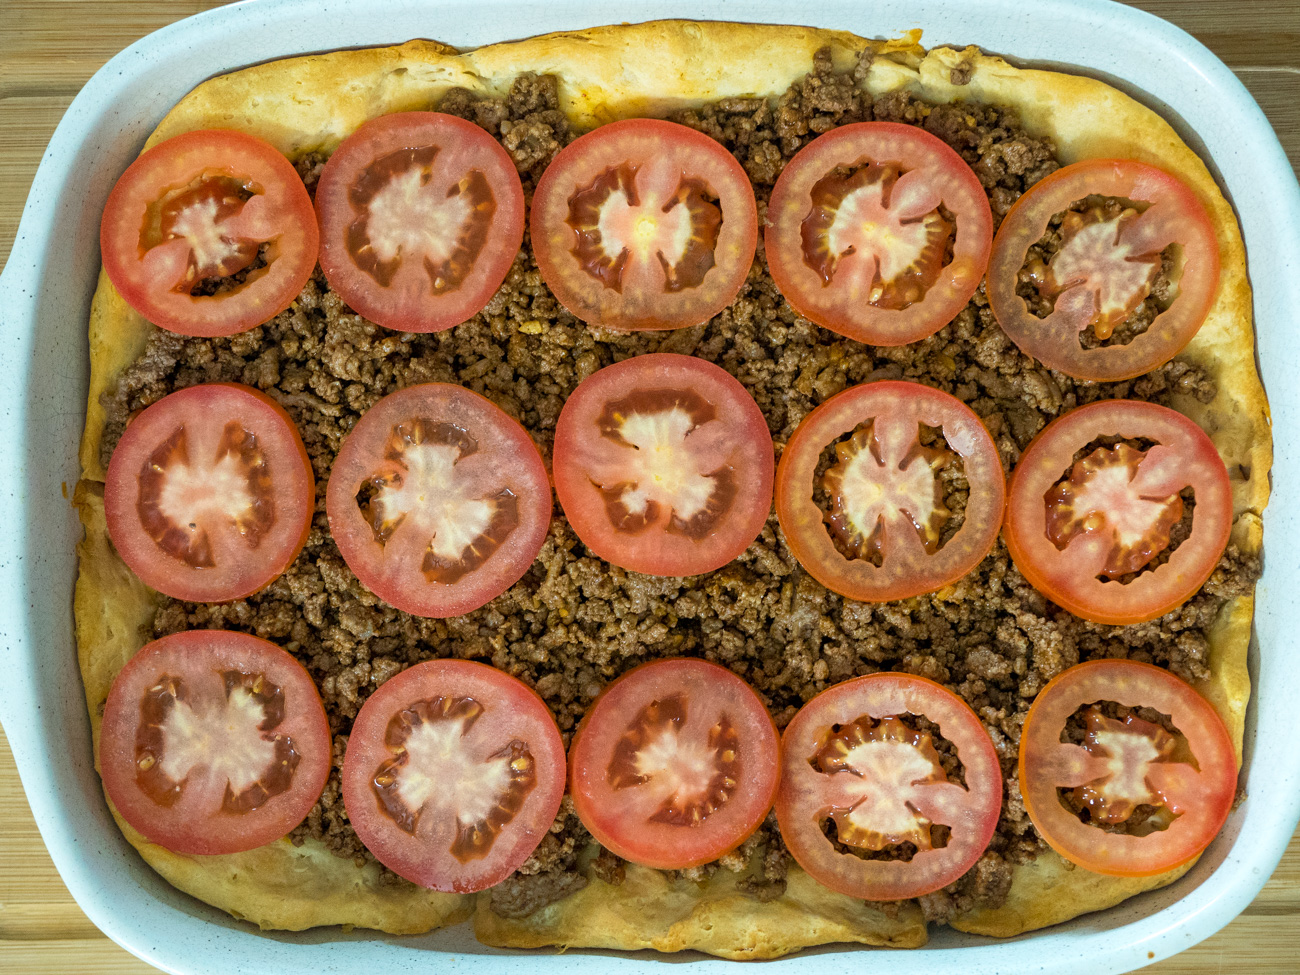 John Wayne casserole preparation